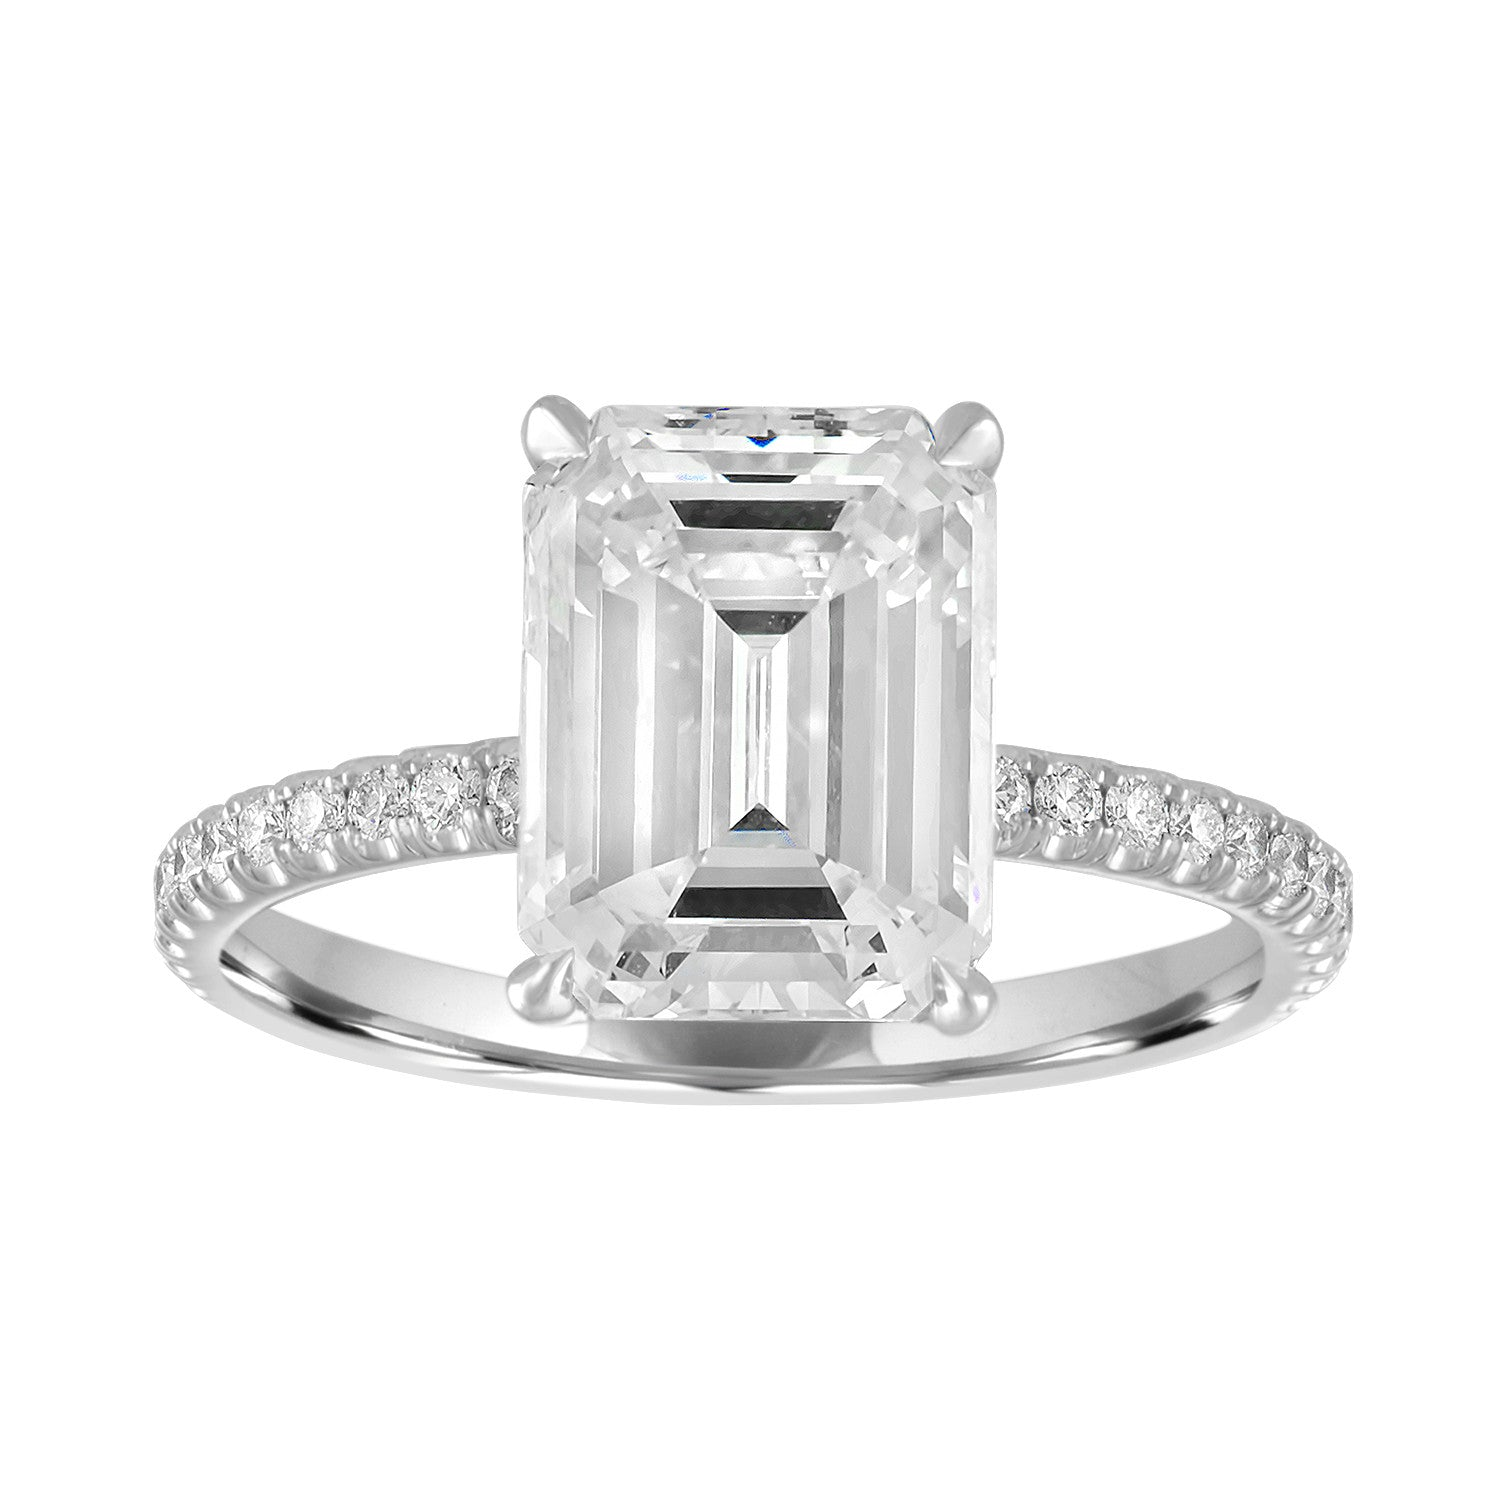 diamonds true story rectangle worldoftiffany the engagementrings ring tiffanystory engagement rings grows co love tiffany